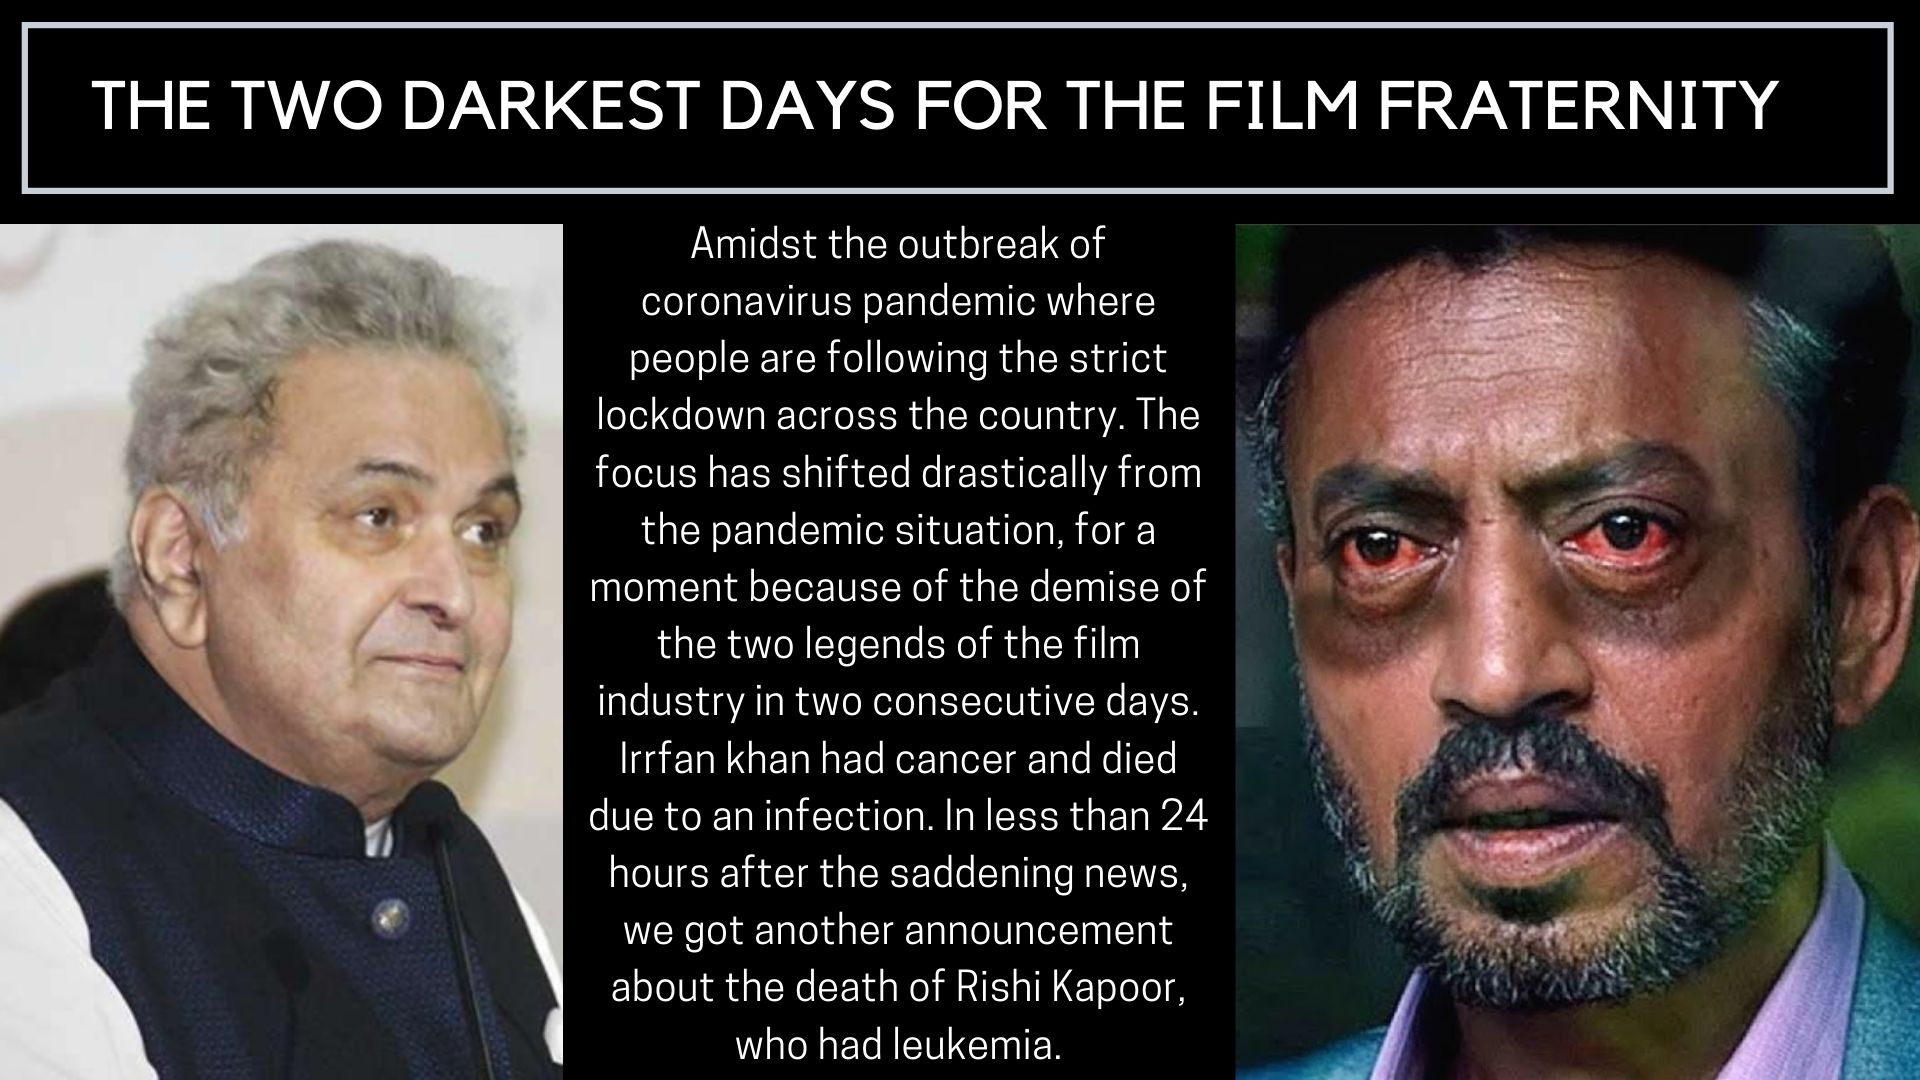 THE TWO DARKEST DAYS FOR THE FILM FRATERNITY